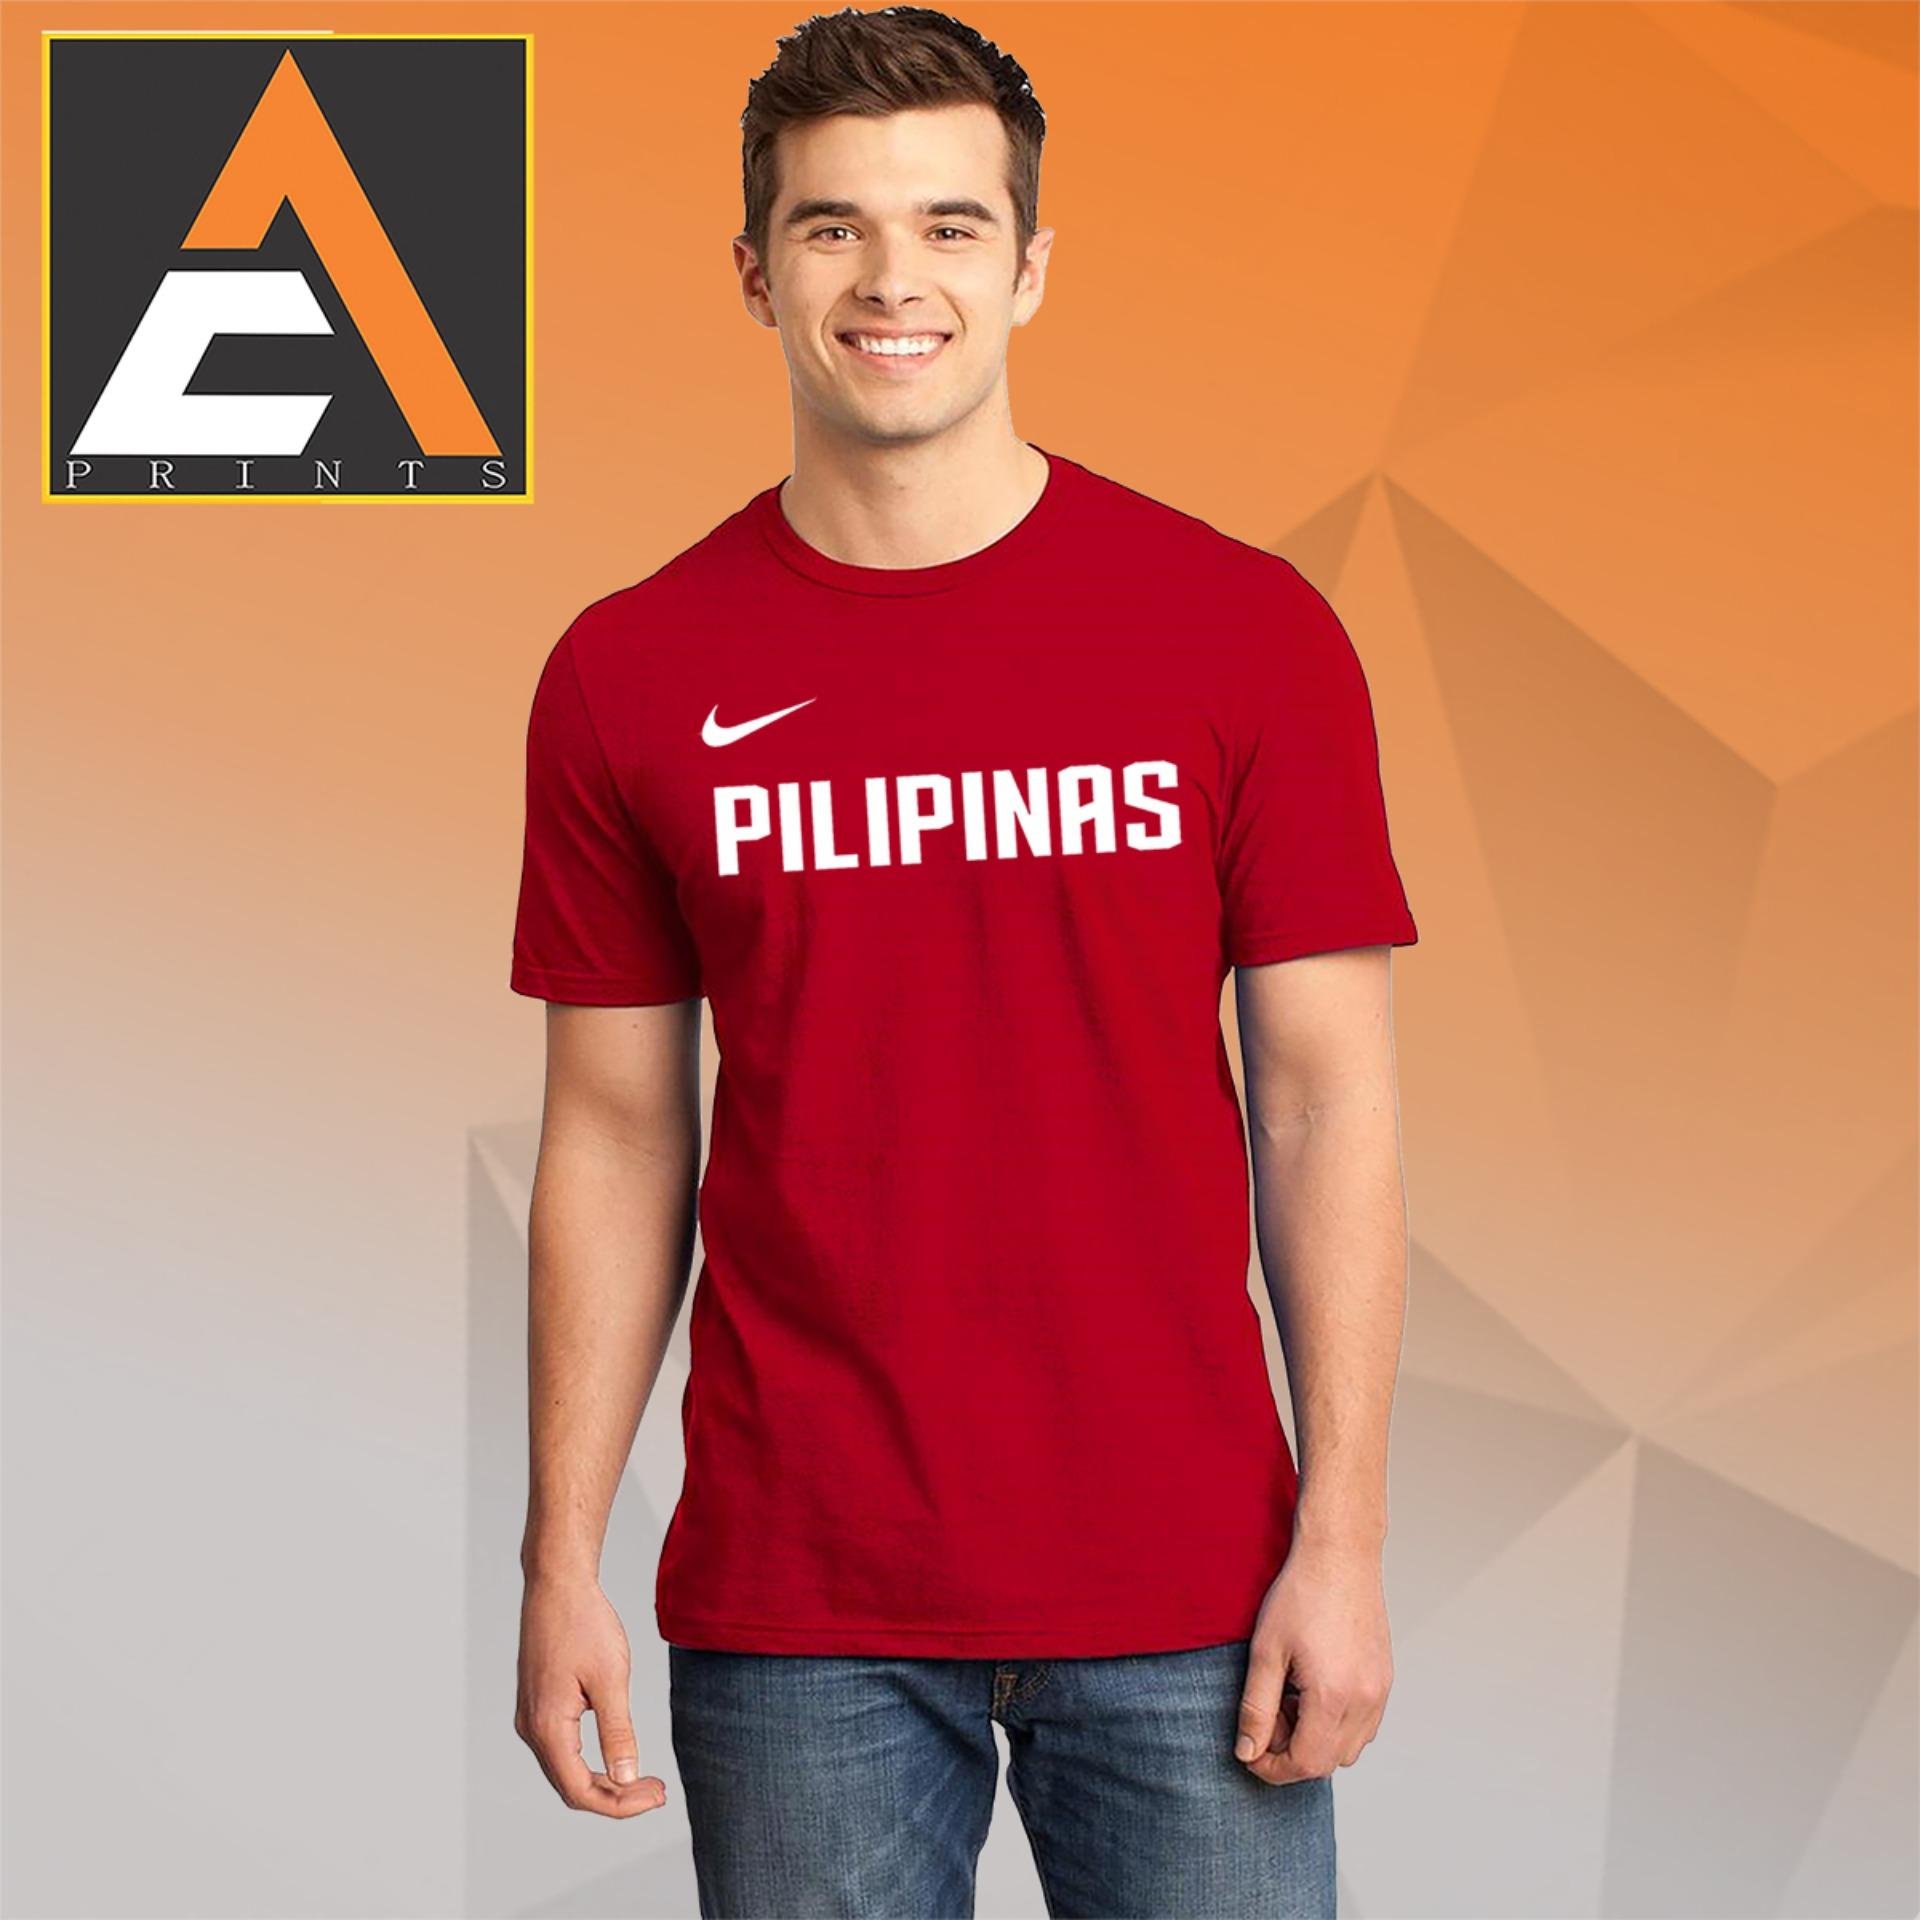 7fc6b2d6f3e Gilas Pilipinas t shirt Basketball Shirt Unisex(Men Women)(Male Female